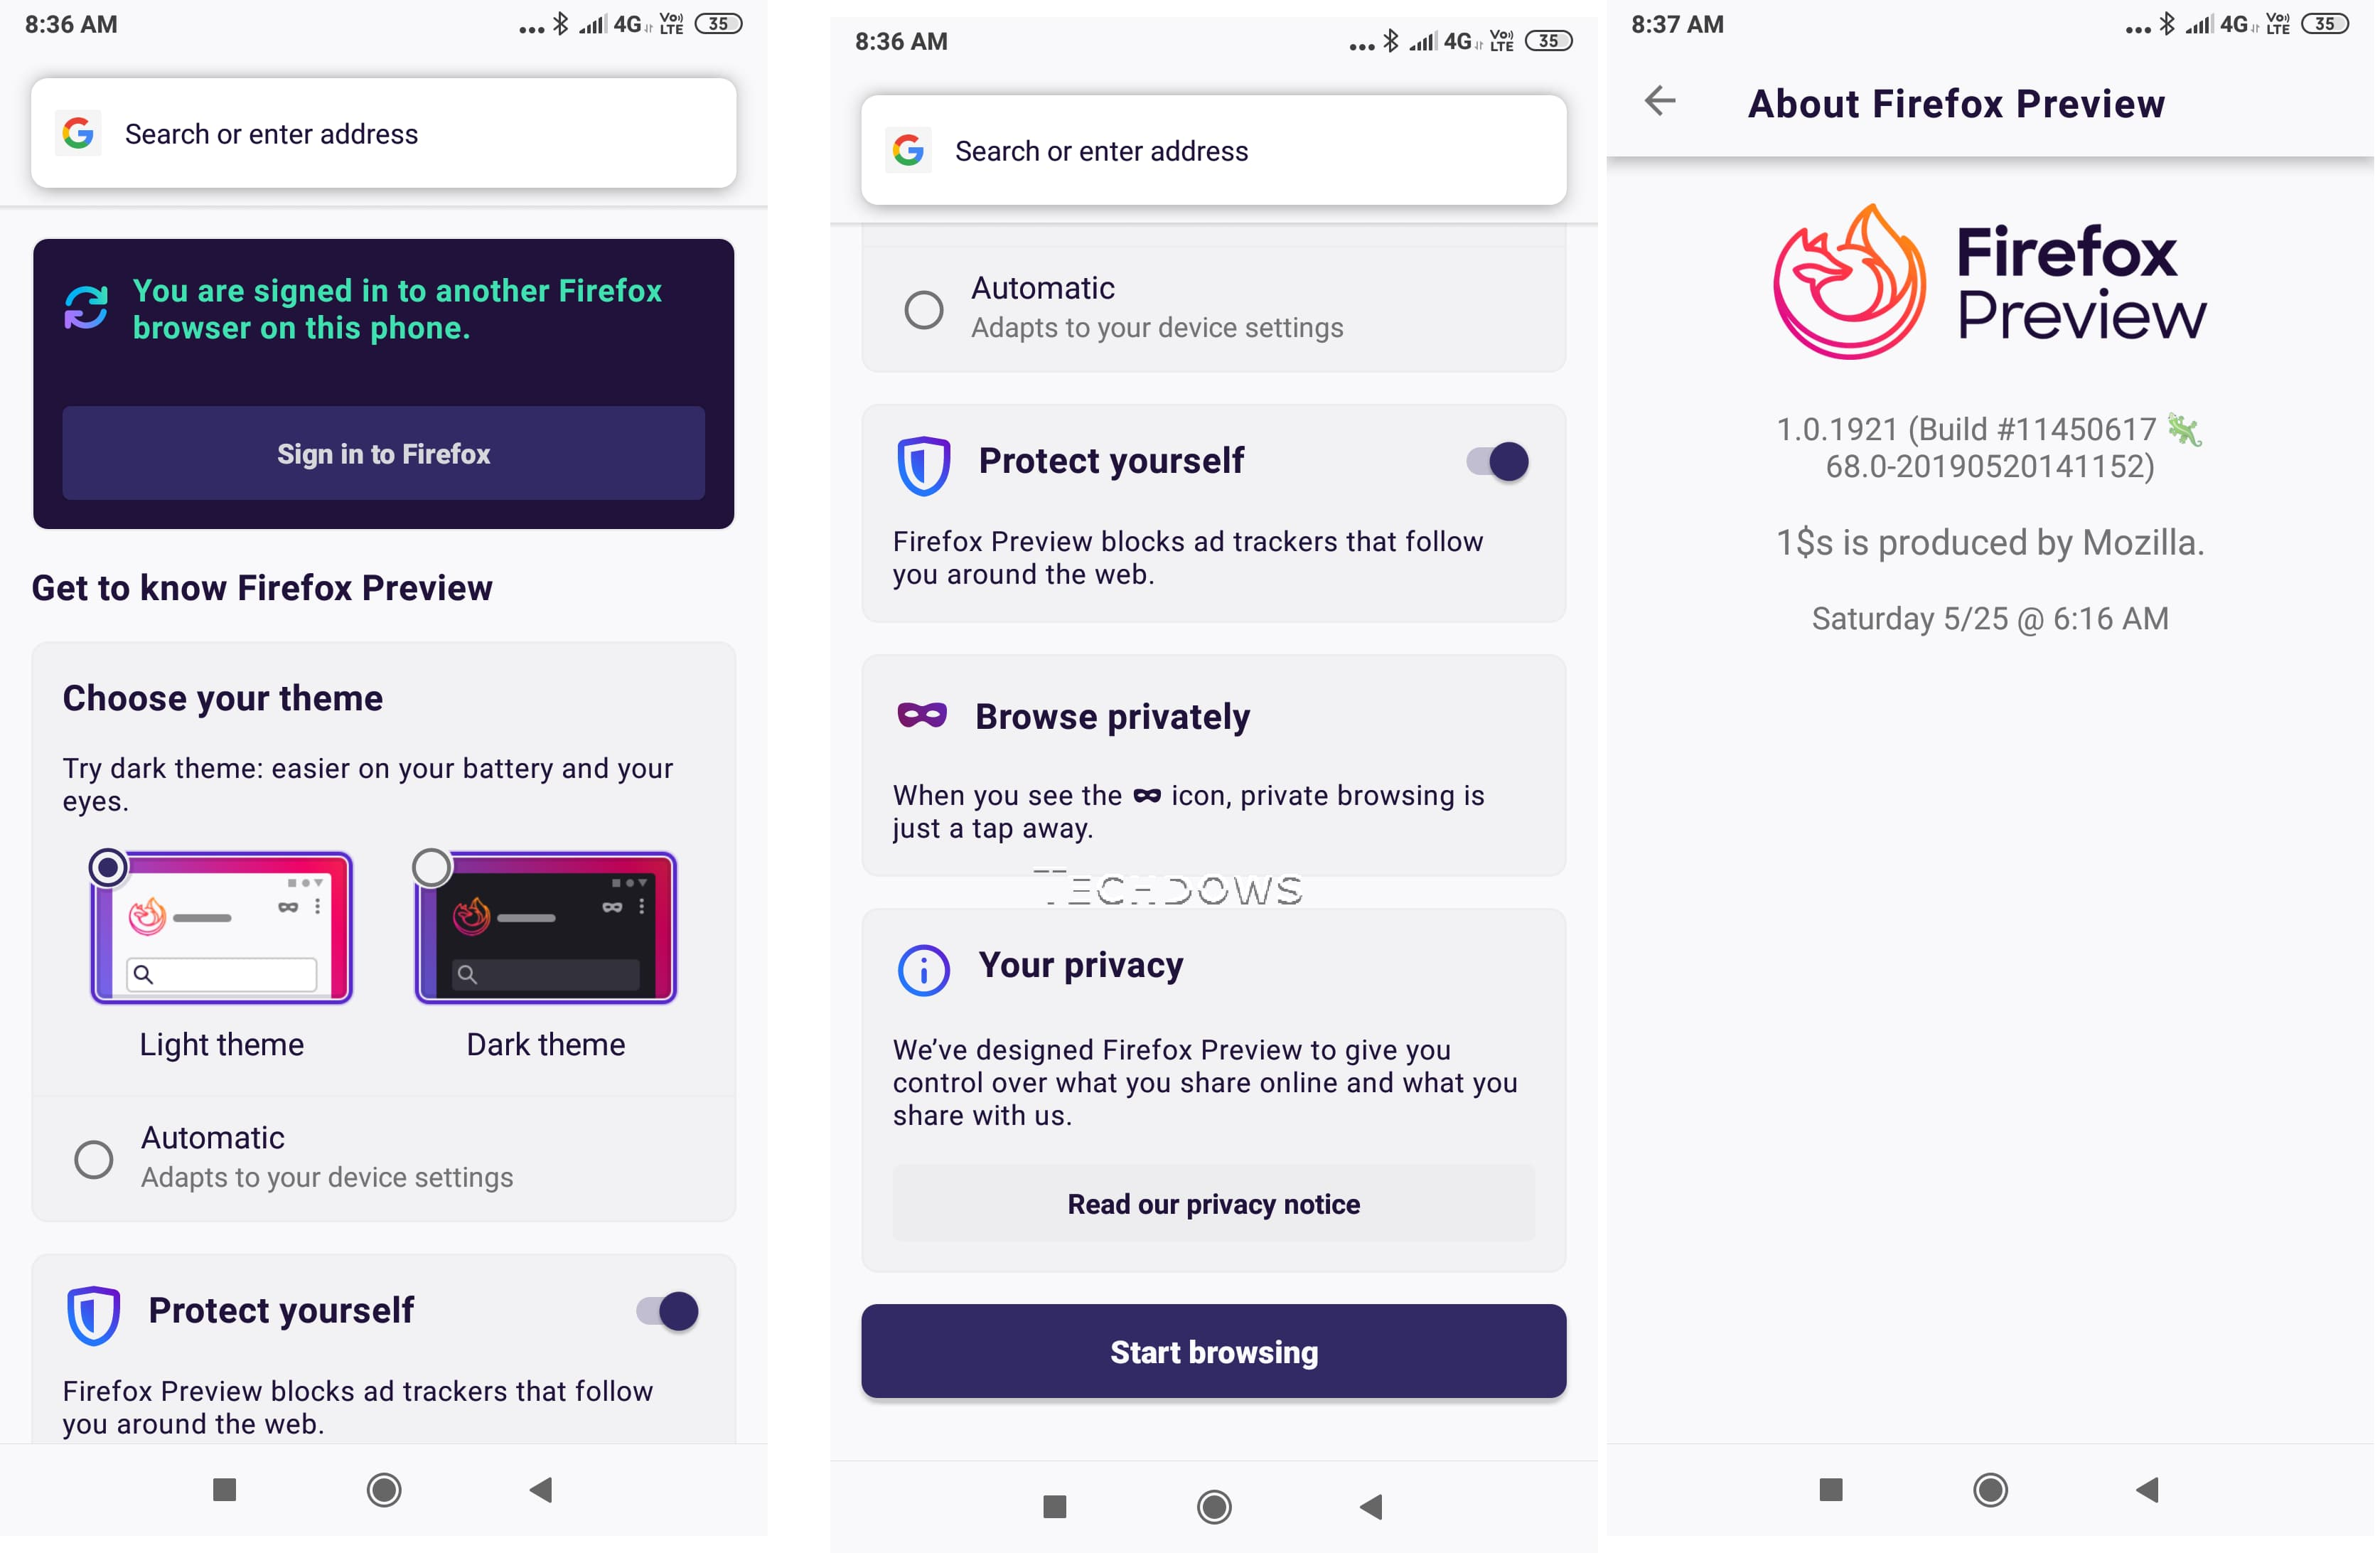 Firefox Preview Android App adds new onboarding Experience